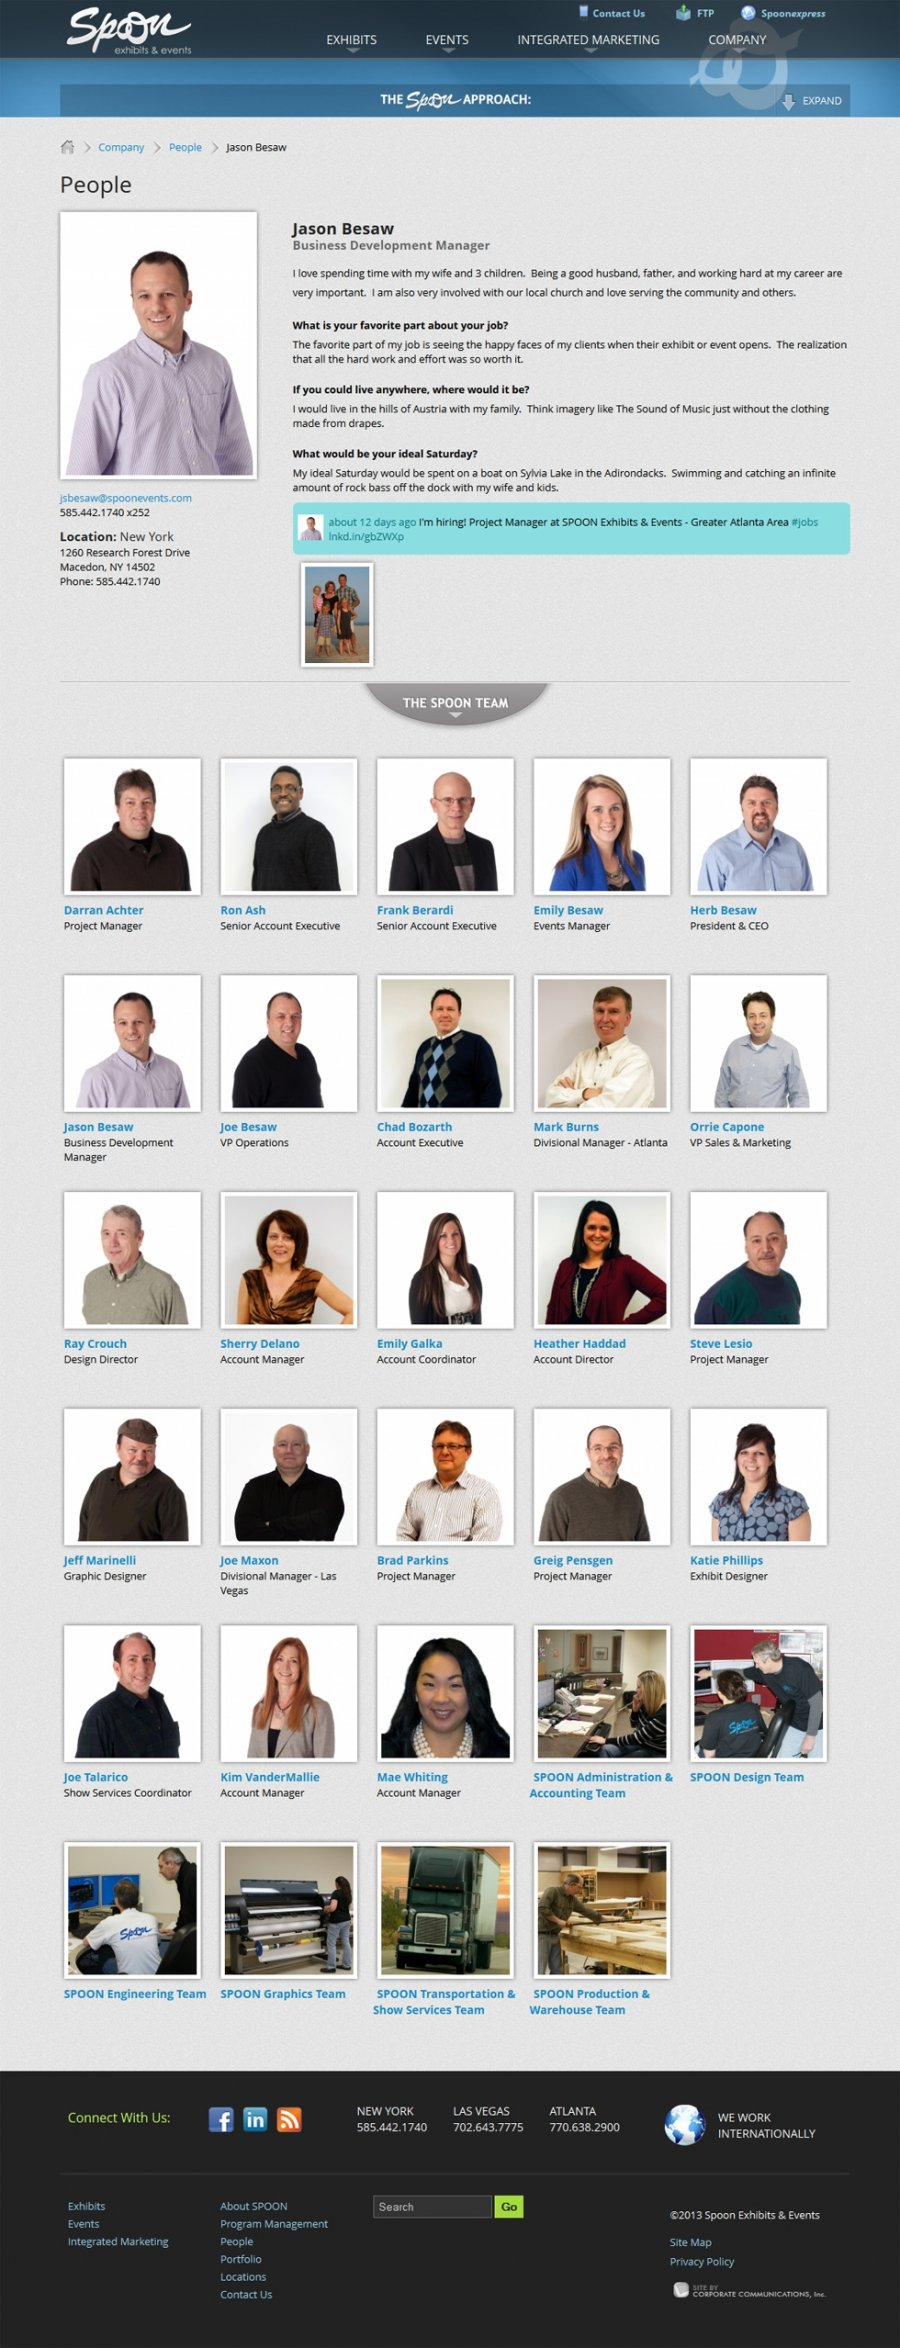 Spoon Exhibits and Events Staff Profiles